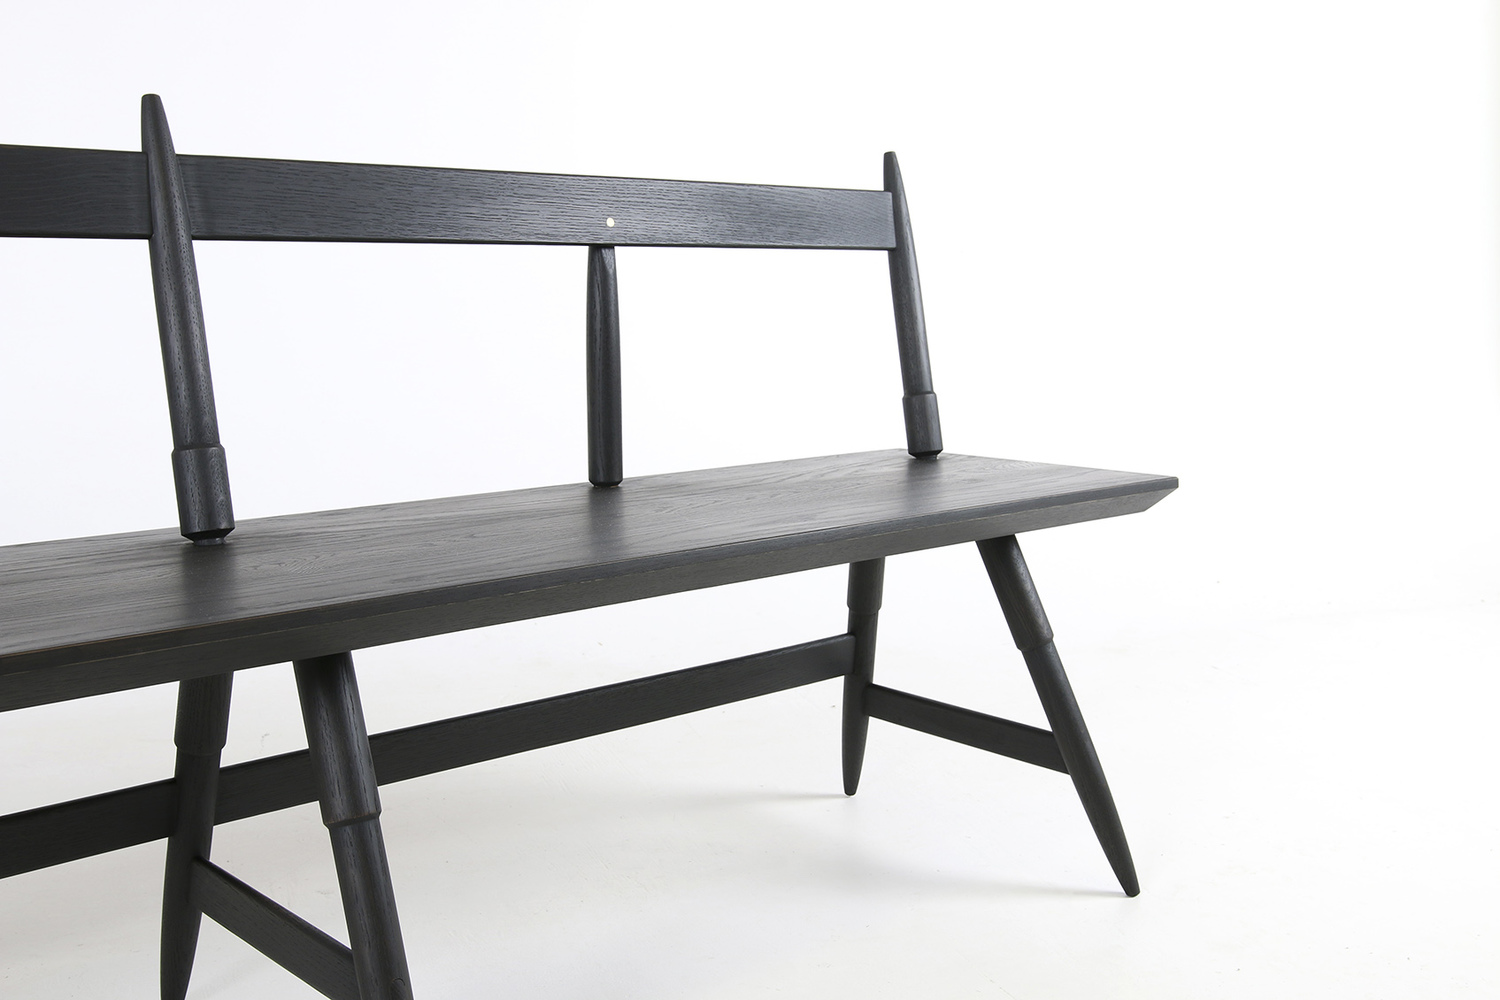 Rockport bench 80 inch width seasoned black half view studio dunn